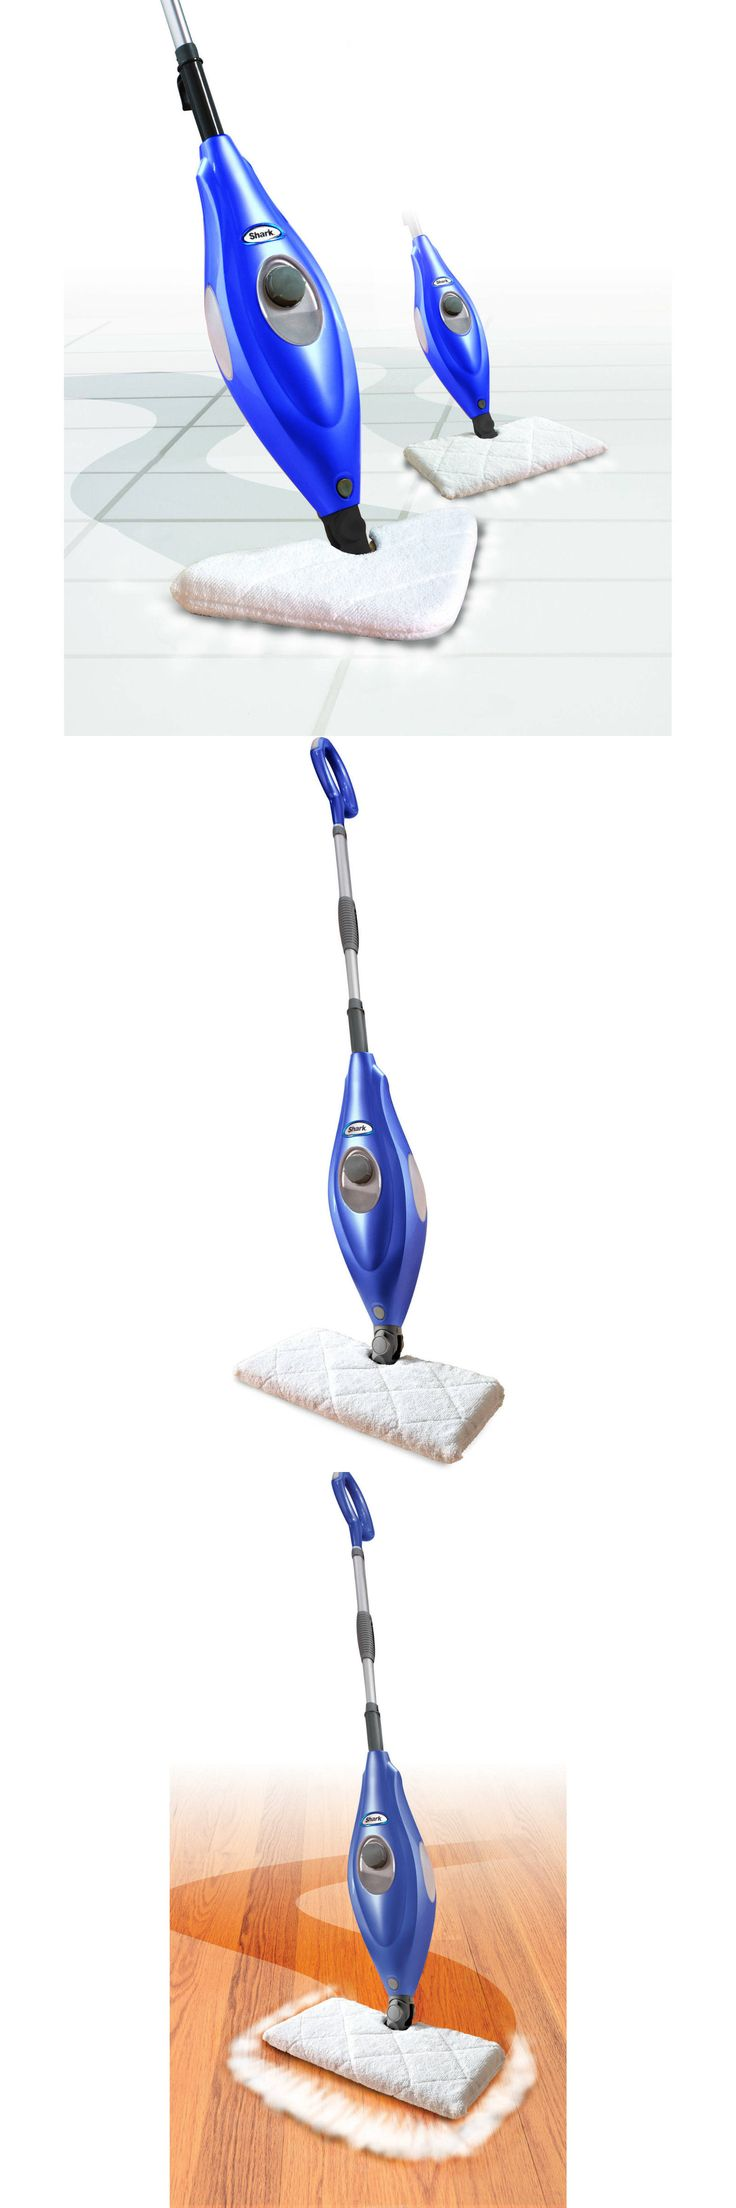 Mops and Brooms 20607: Shark Deluxe Steam Pocket Mop And Multi Surface Floor Cleaner, Blue | S3501 -> BUY IT NOW ONLY: $57 on eBay!